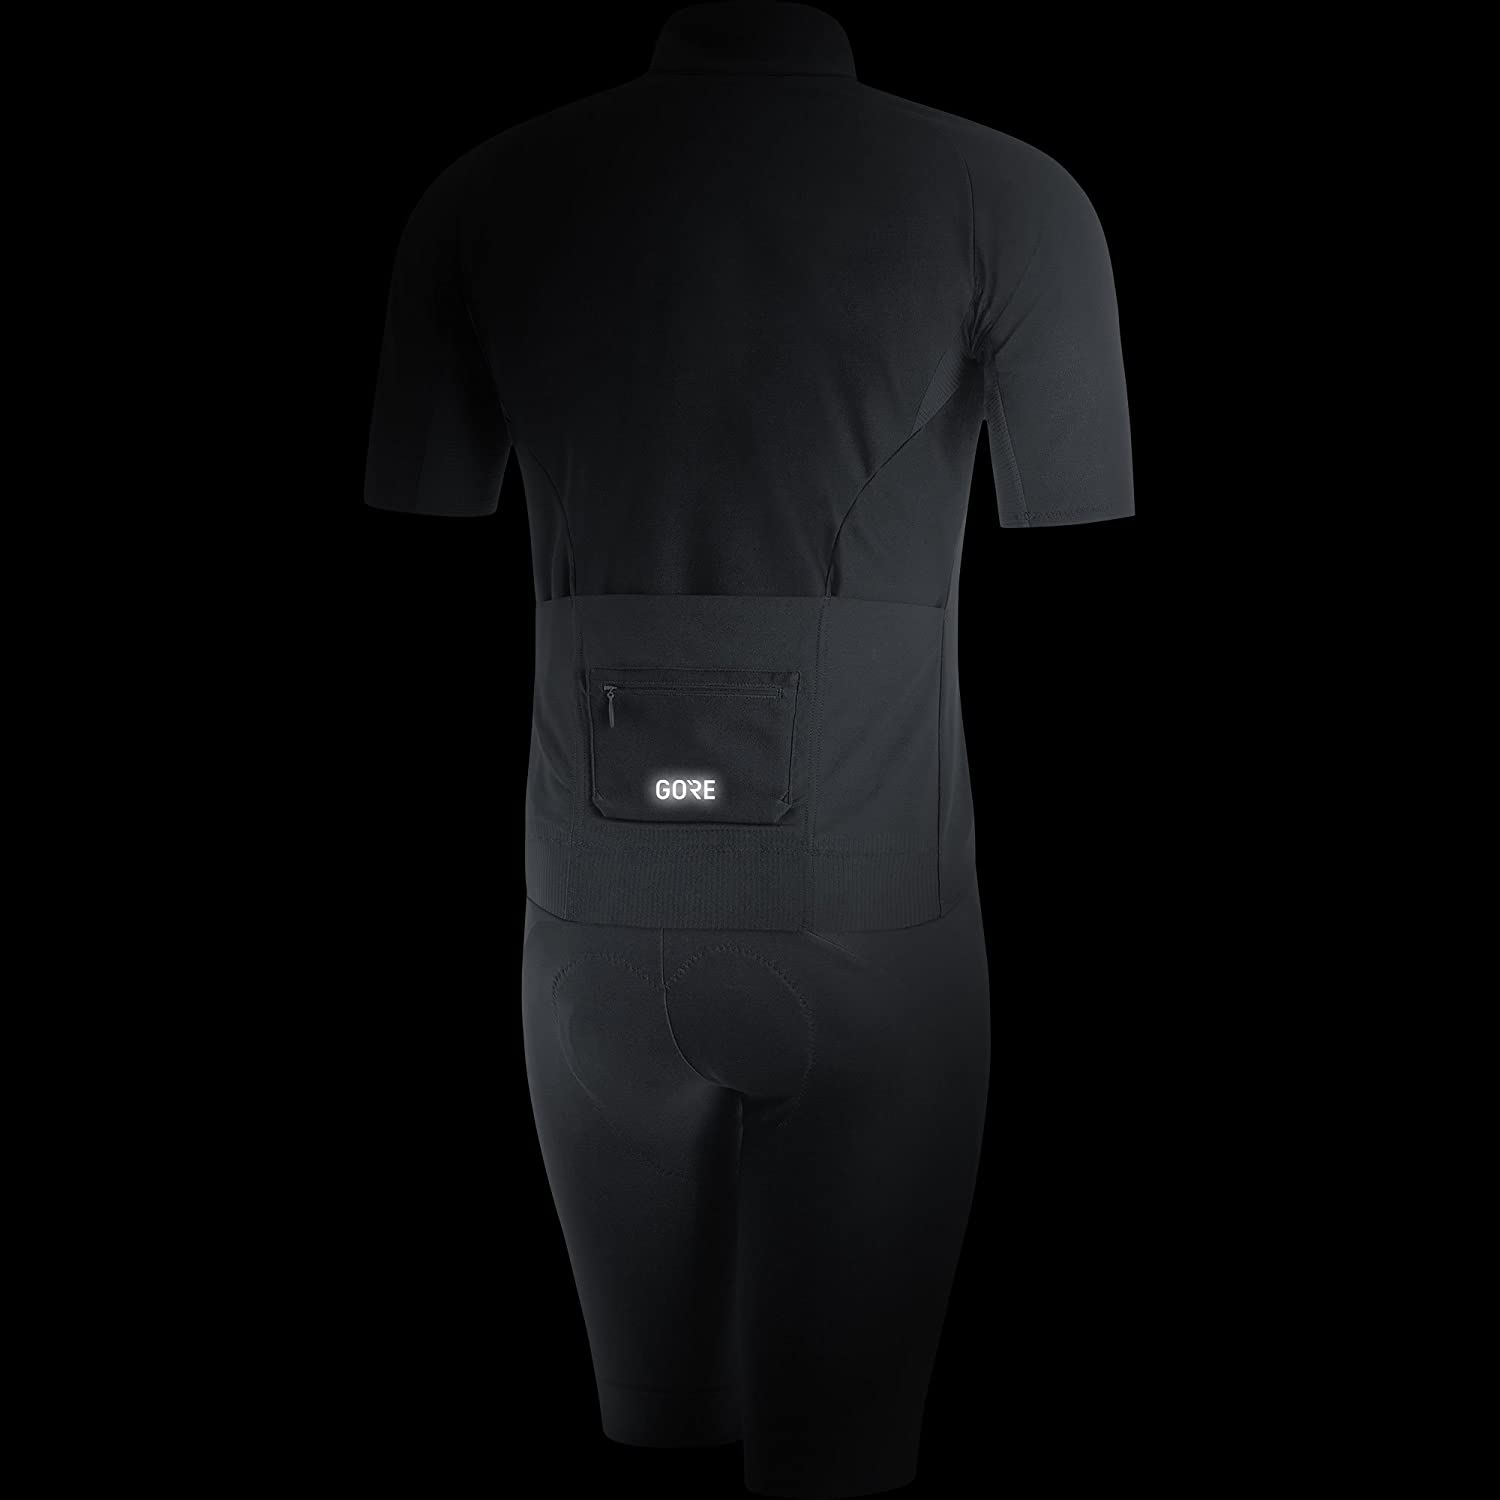 GORE Wear Mens Windproof Road Cycling Short Sleeve Jersey Color: Black 100186 Size: L GORE Wear C7 GORE Wear WINDSTOPPER Jersey